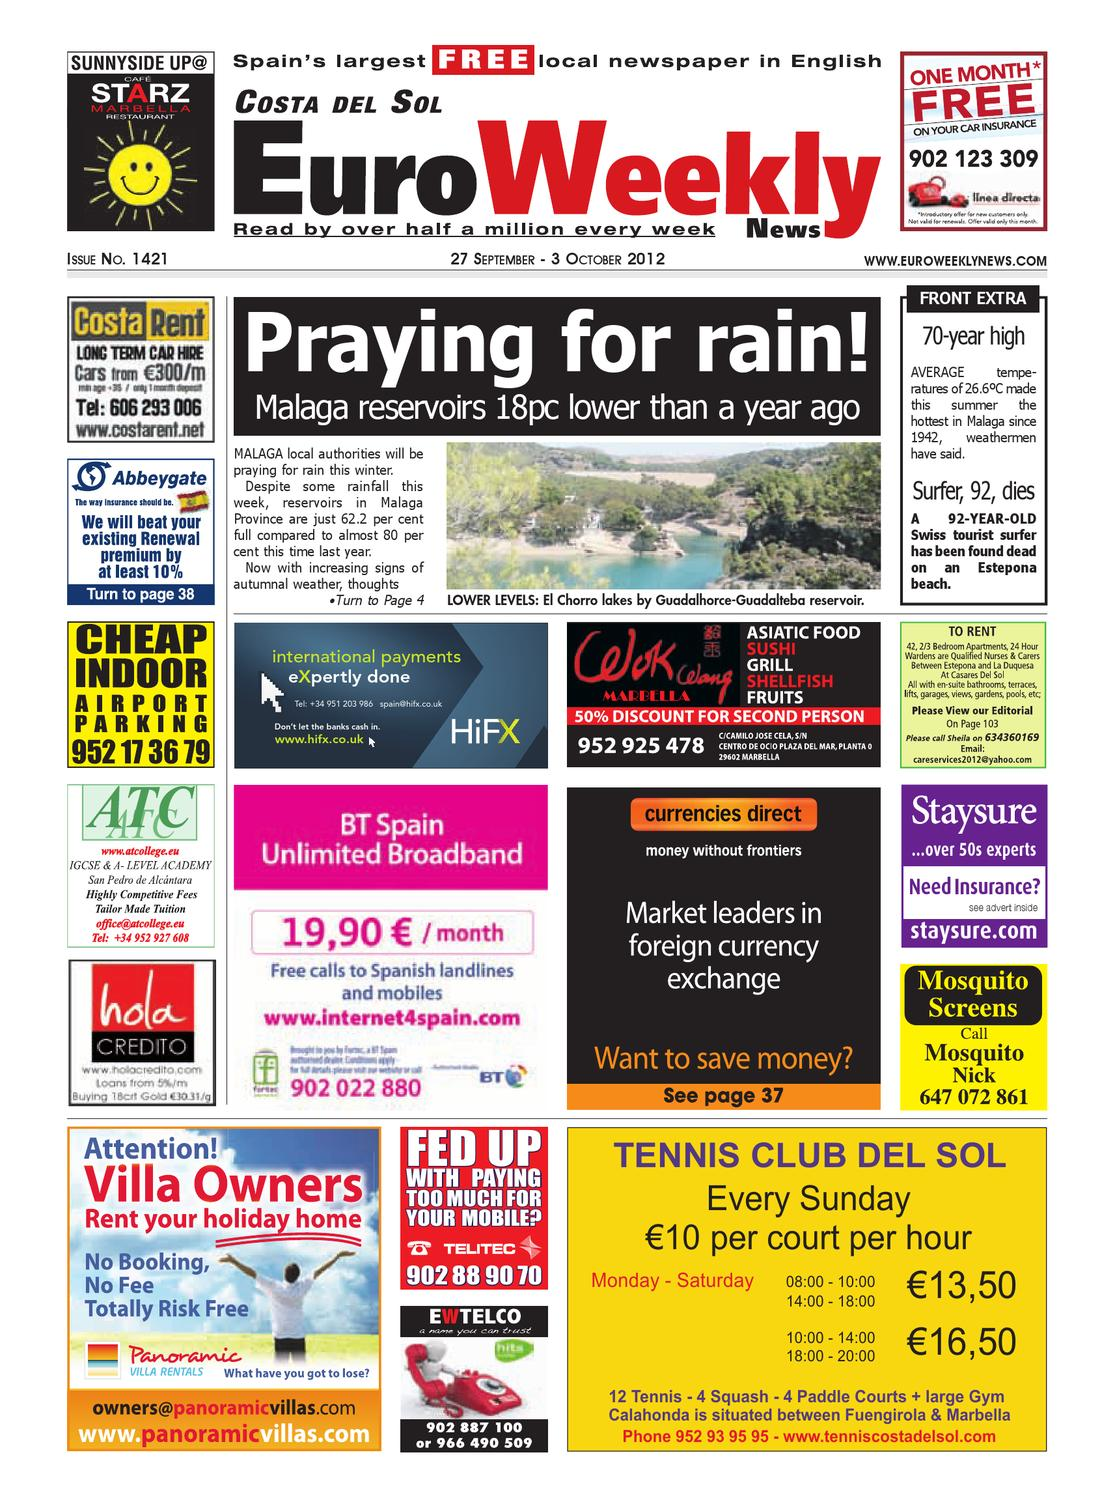 Costa del sol 27 september 3 october 2012 issue 1421 by euro costa del sol 27 september 3 october 2012 issue 1421 by euro weekly news media sa issuu fandeluxe Images